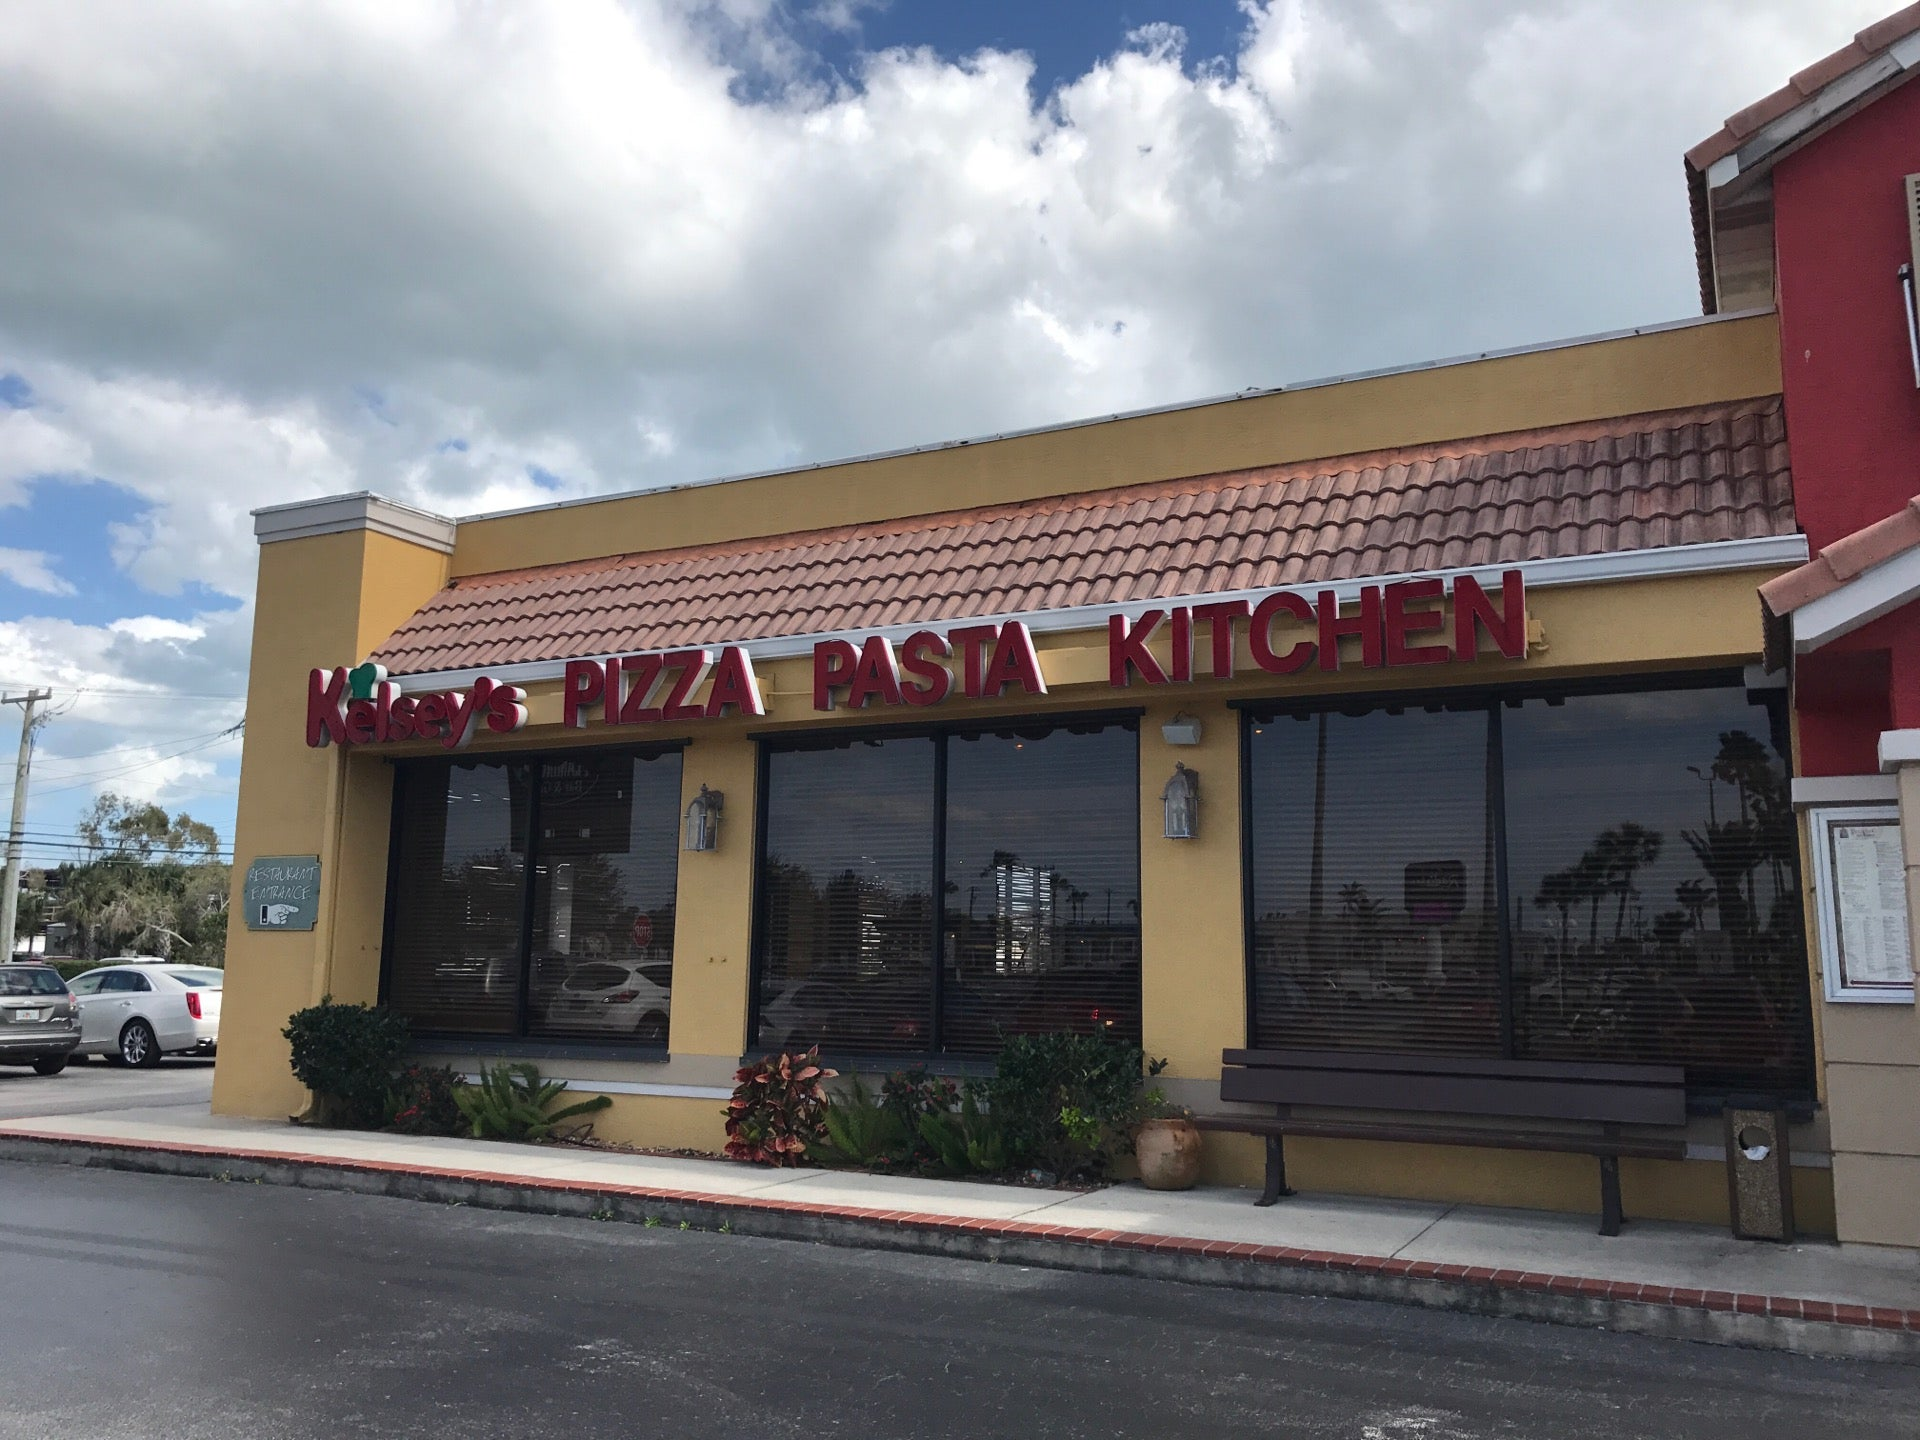 Kelsey's Restaurant & Pizzeria in Cape Canaveral - Parent